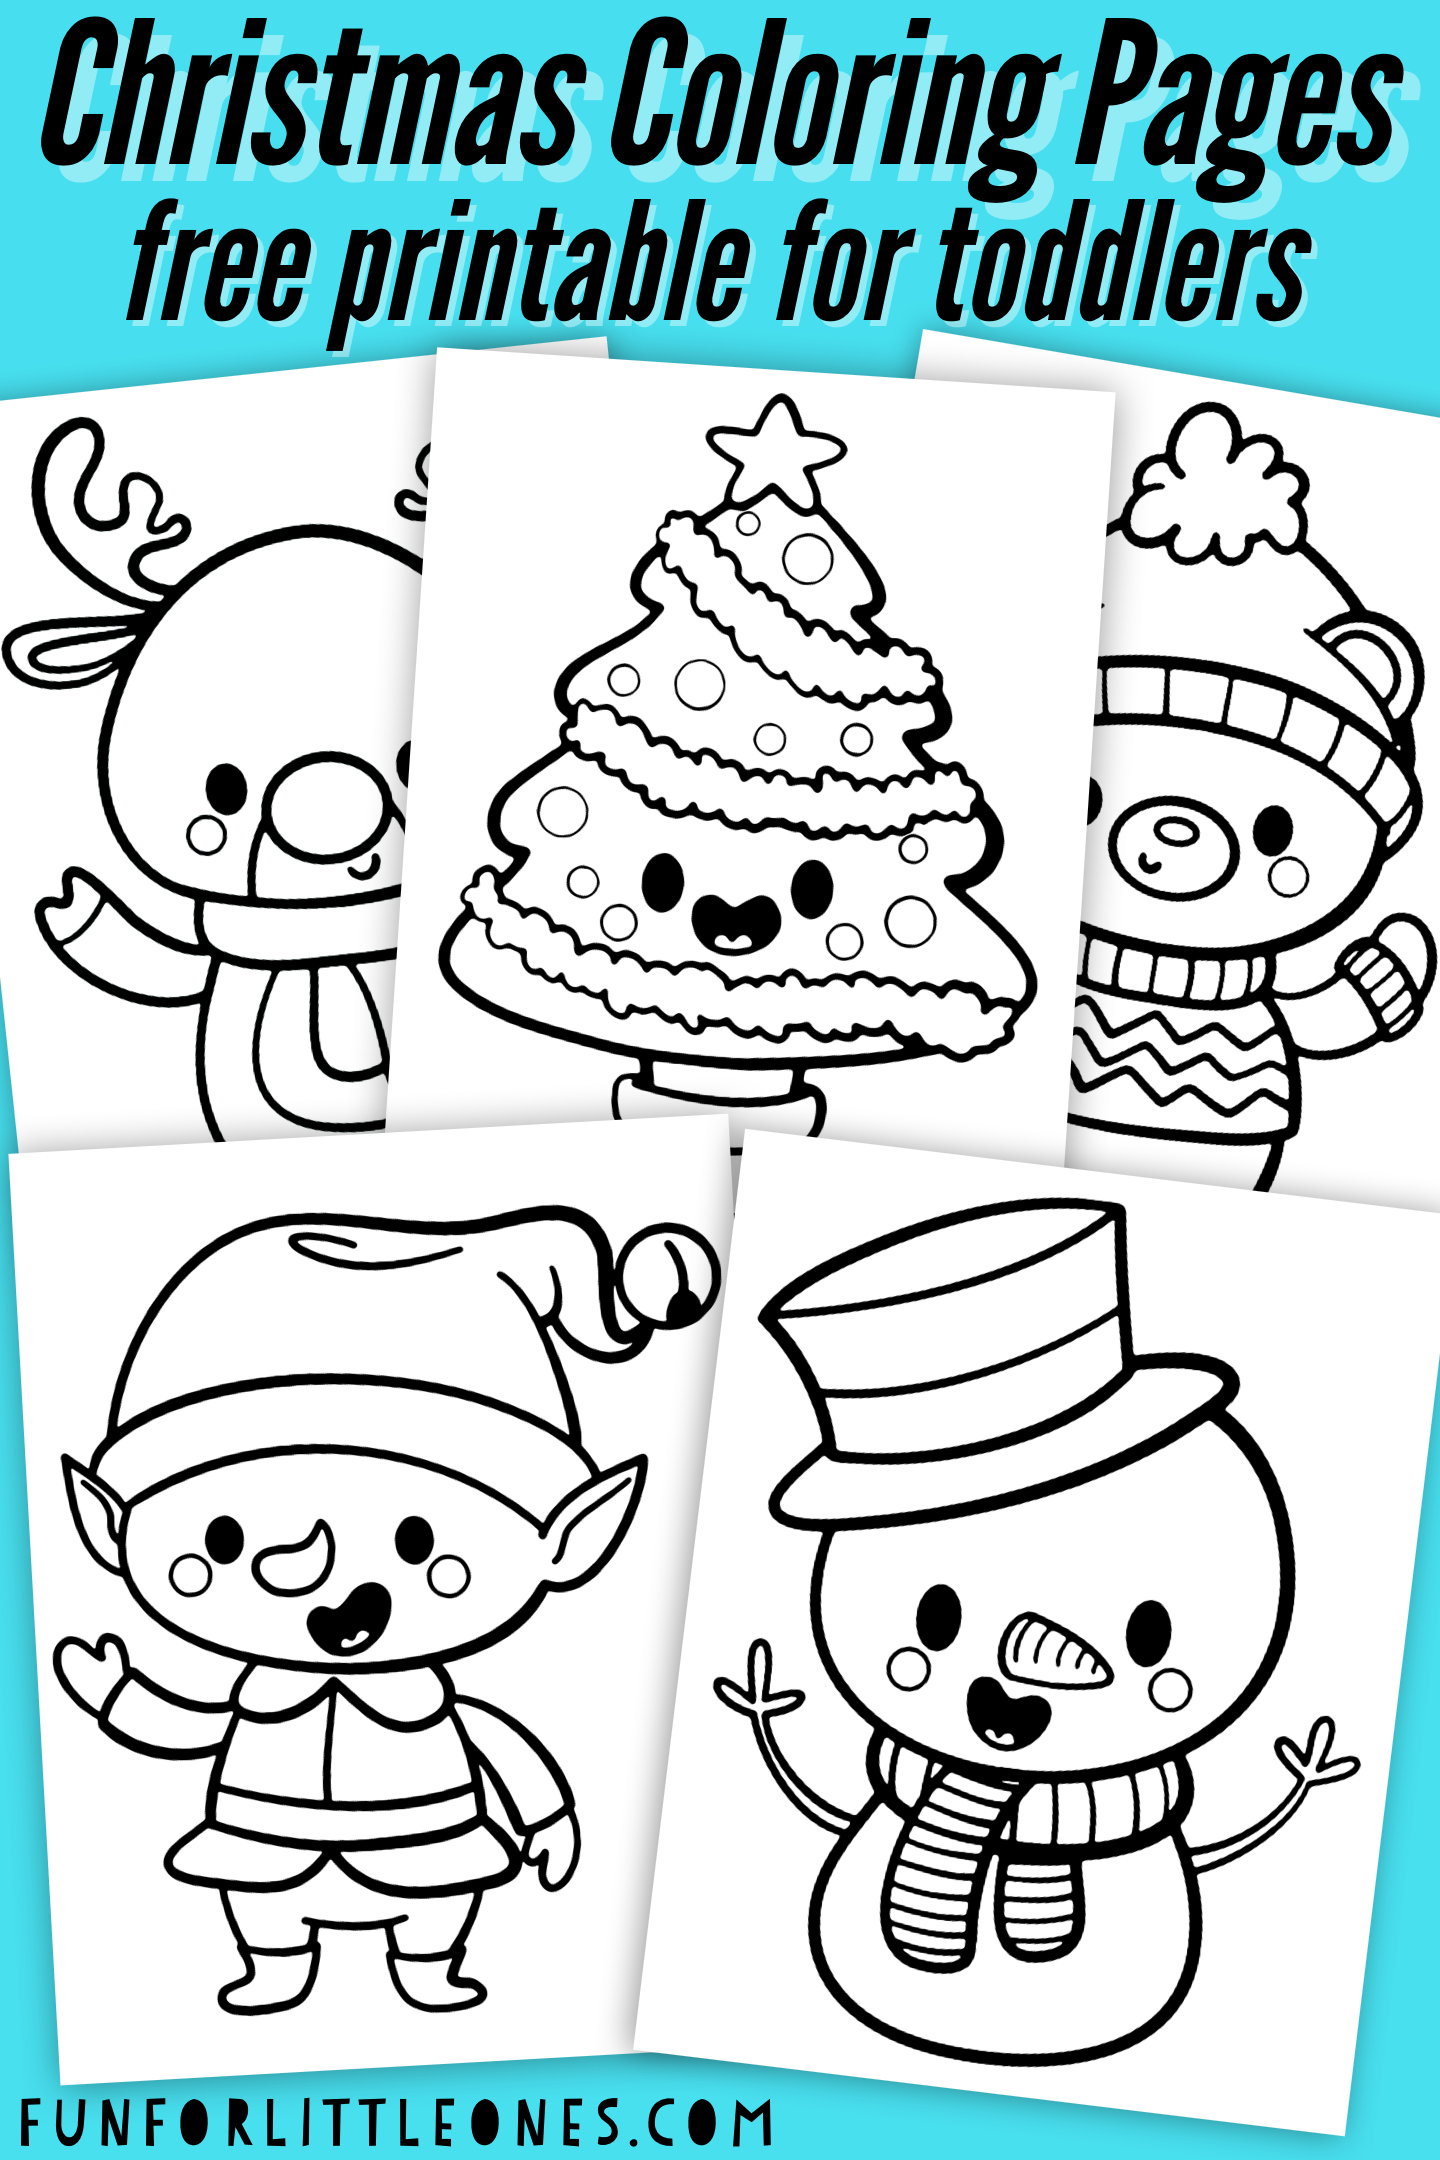 Cute Christmas Coloring Pages Yahoo Image Search Results Christmas Coloring Sheets Snowman Coloring Pages Printable Christmas Coloring Pages